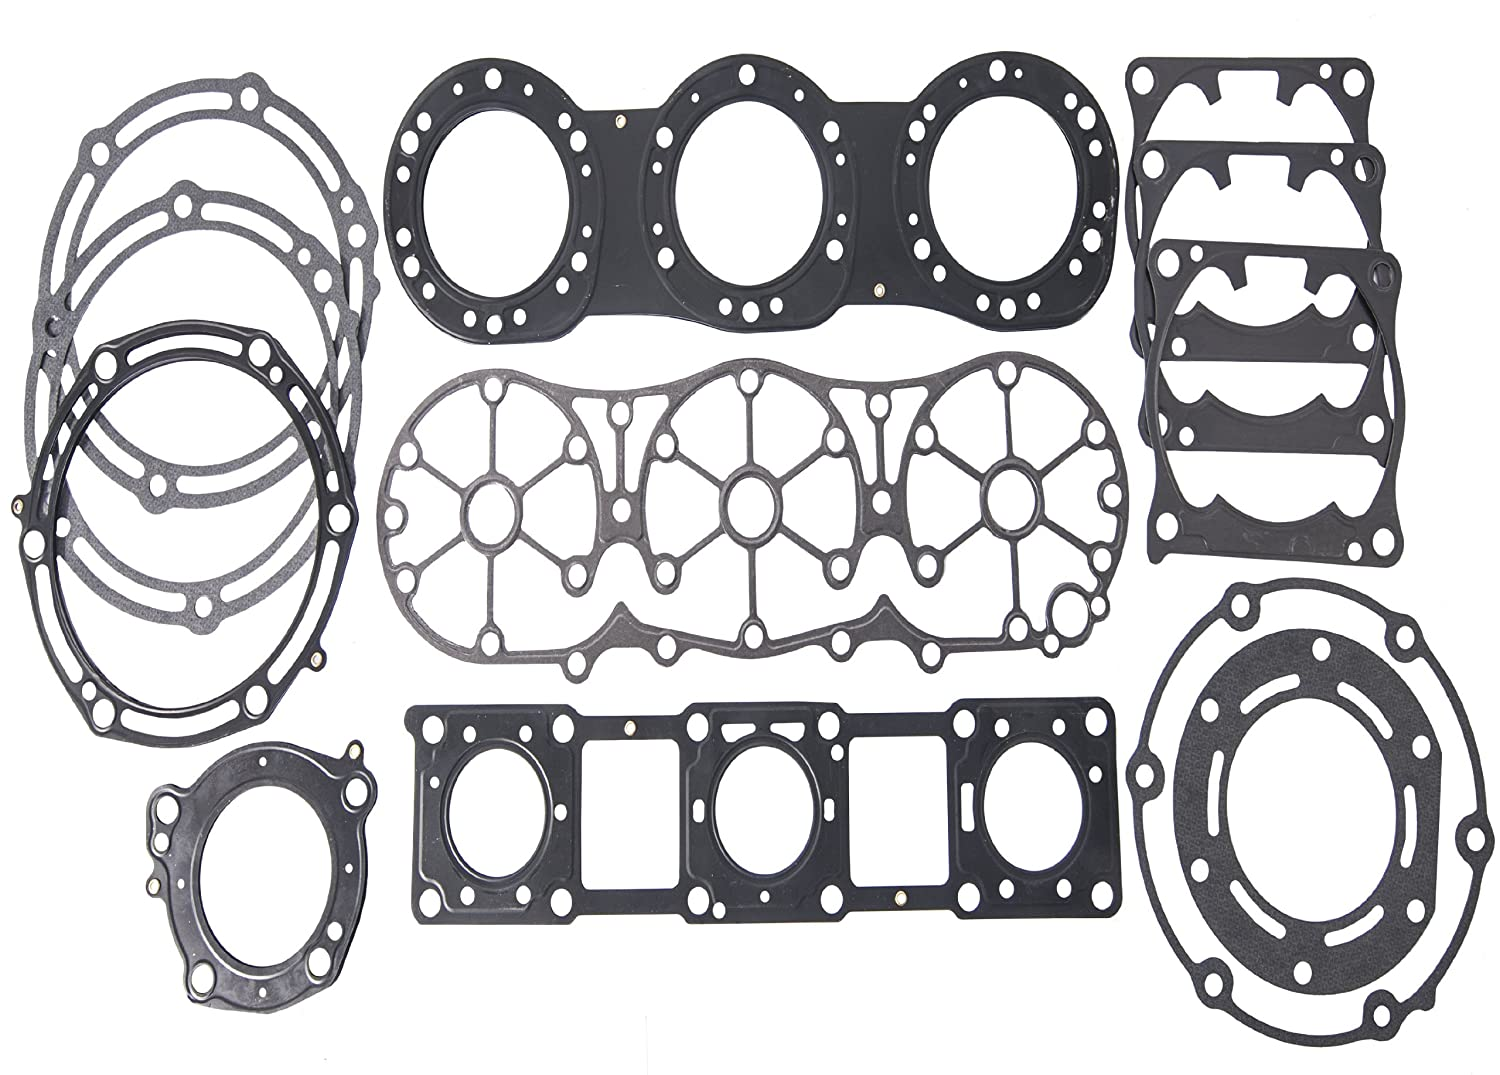 Yamaha 1200PV Top End Gasket Kit XLT 1200//GP 1200R//XR 1800 1999 2000 2001 2002 2003 2004 2005